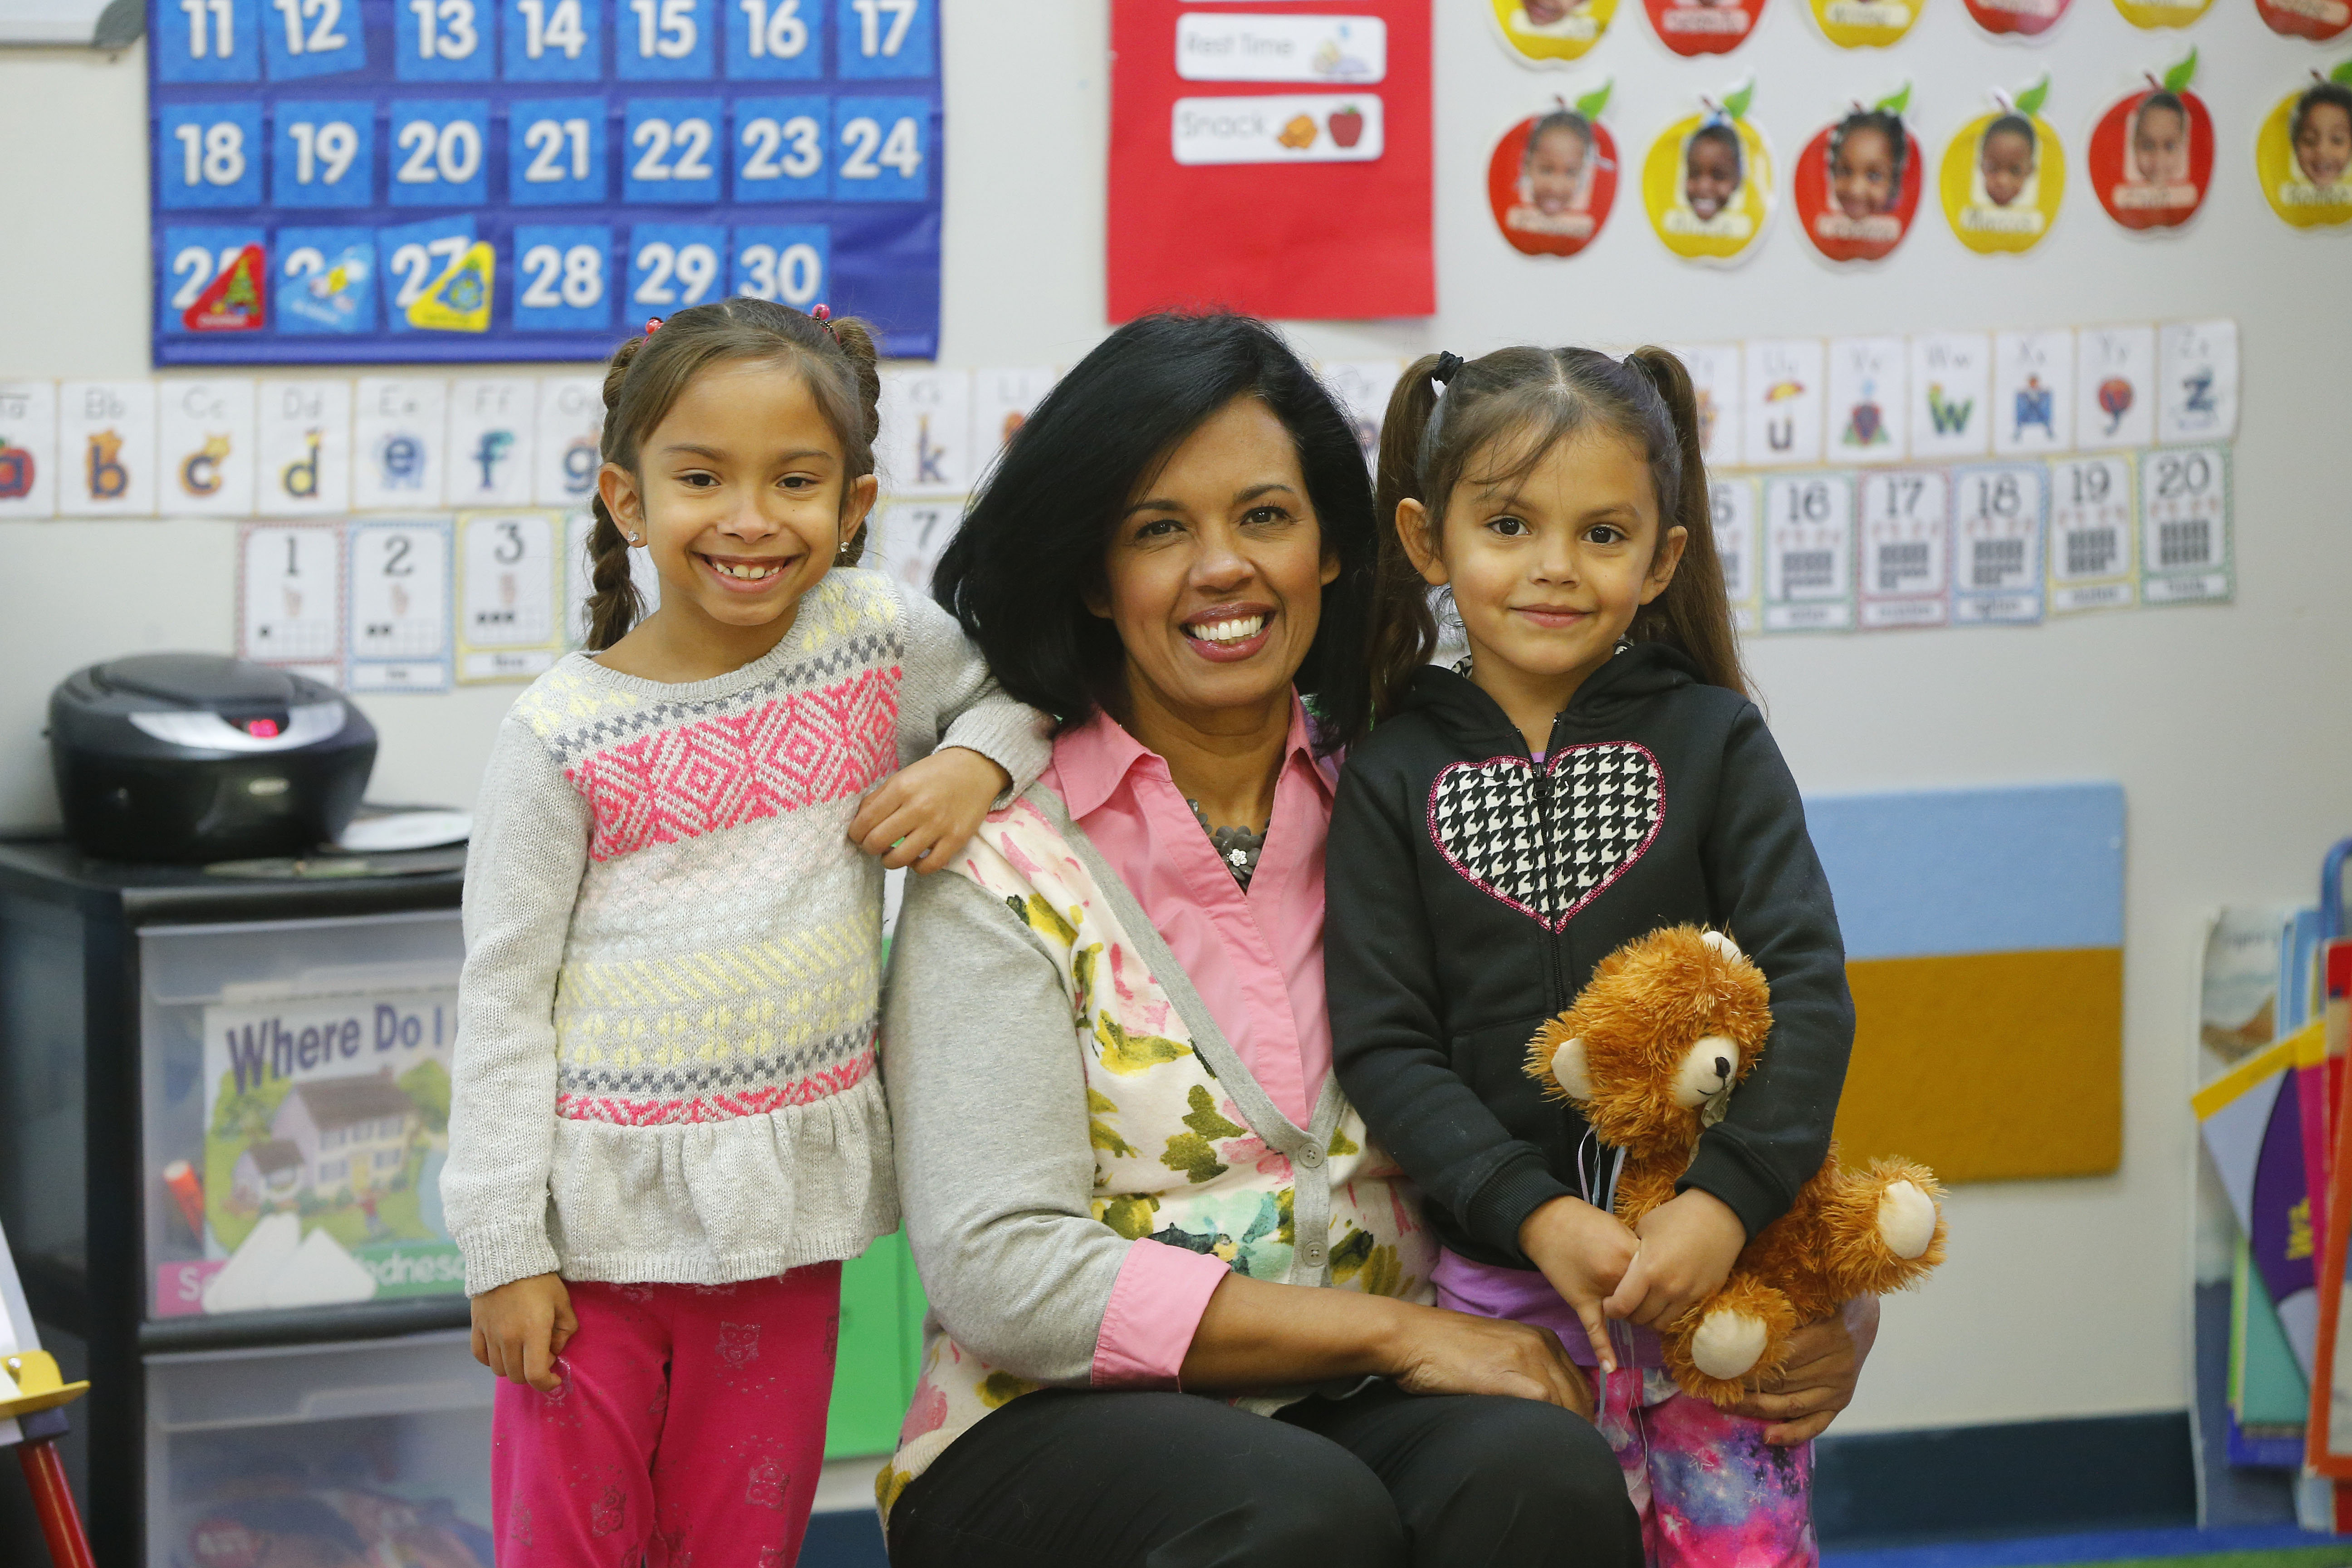 Dallas Lozada with her grandchildren Juliana Rivera, left, and Jayla Navarro, right, in Jayla's day care classroom at the Family Help Center in Buffalo. Lozada said she wouldn't have been able to keep her full-time job without child care assistance from Erie County. (Mark Mulville/Buffalo News)